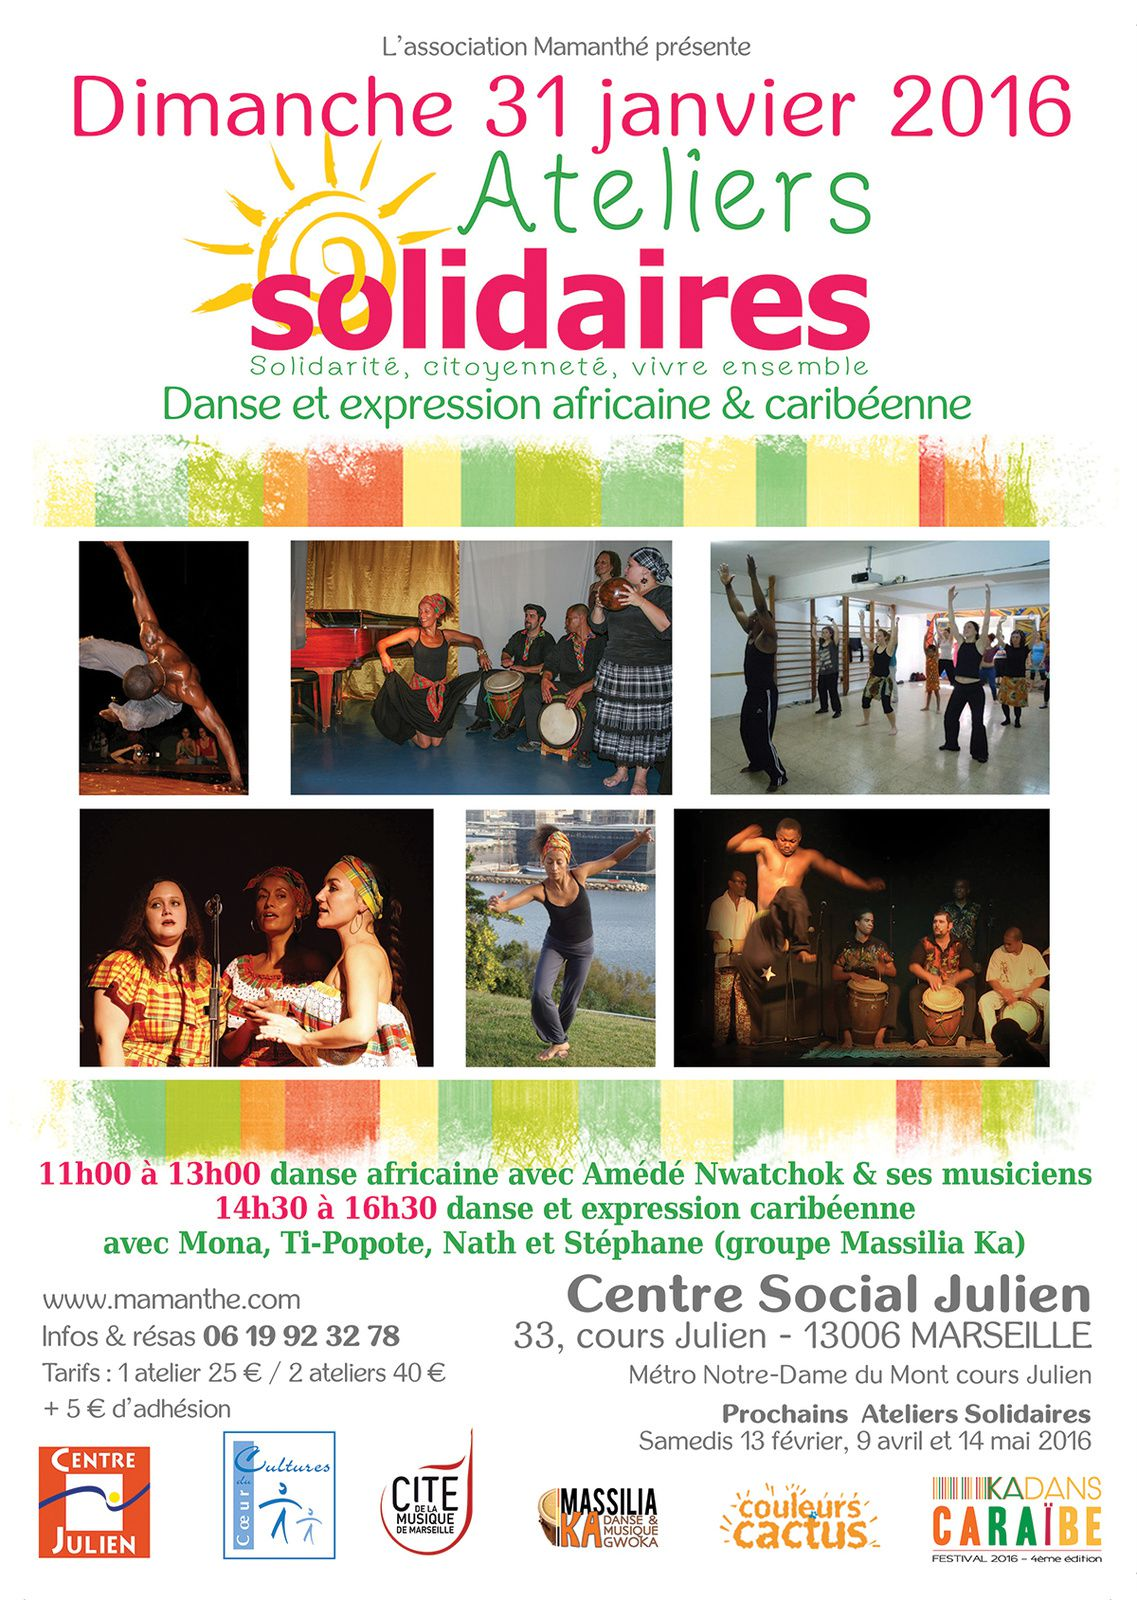 31/01/16 - Ateliers solidaires - Marseille